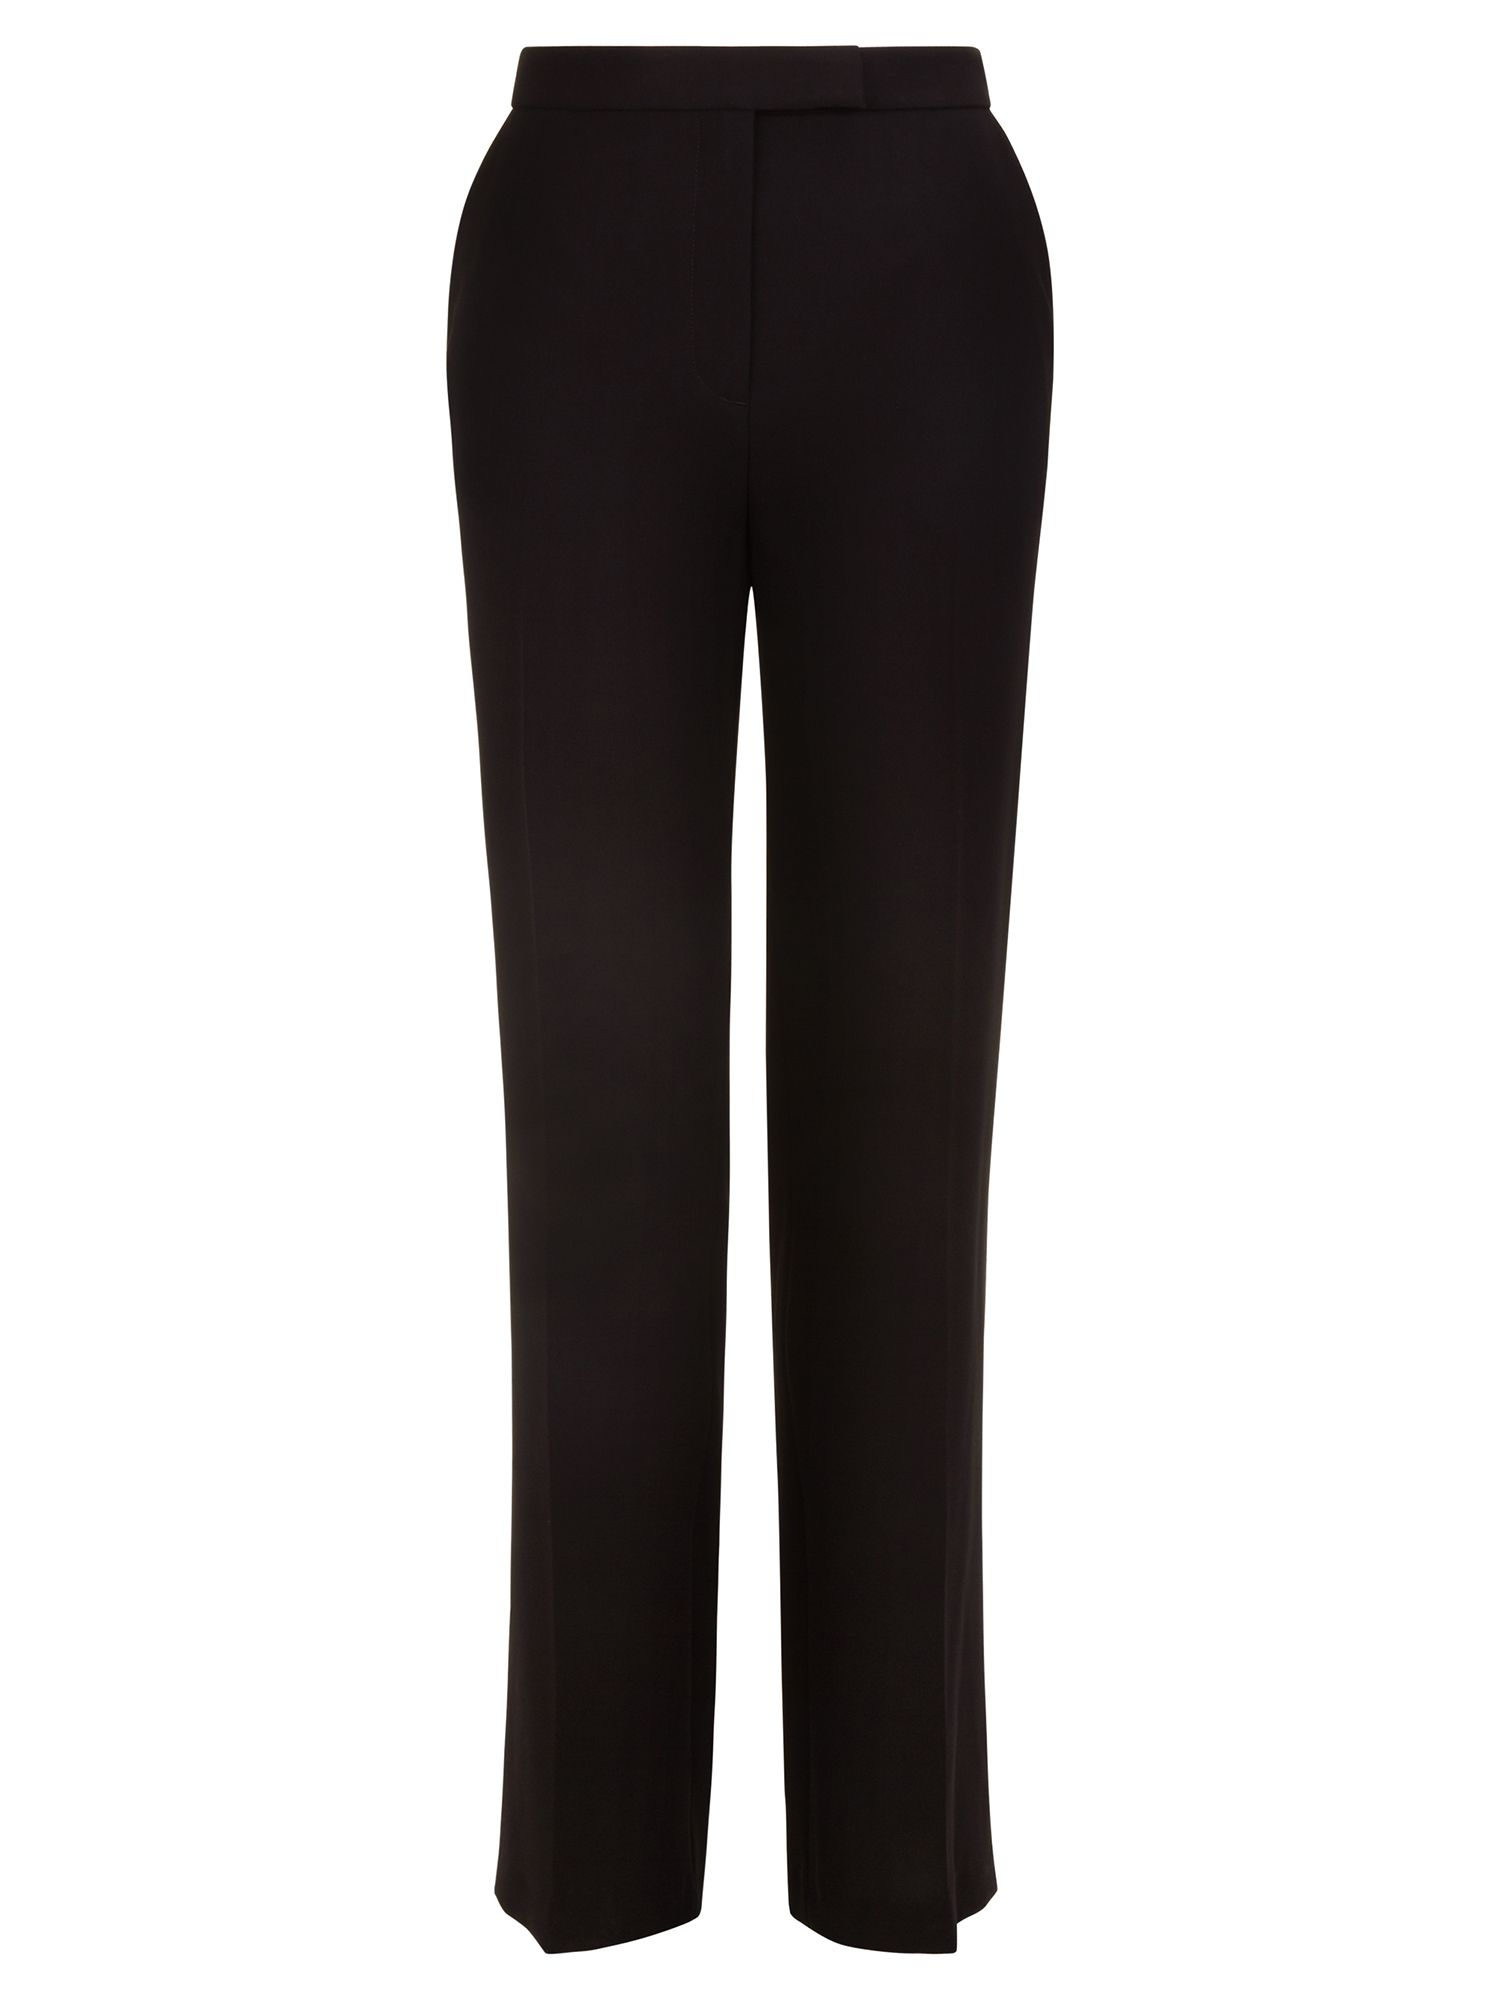 Hobbs Catherine Trouser, Black